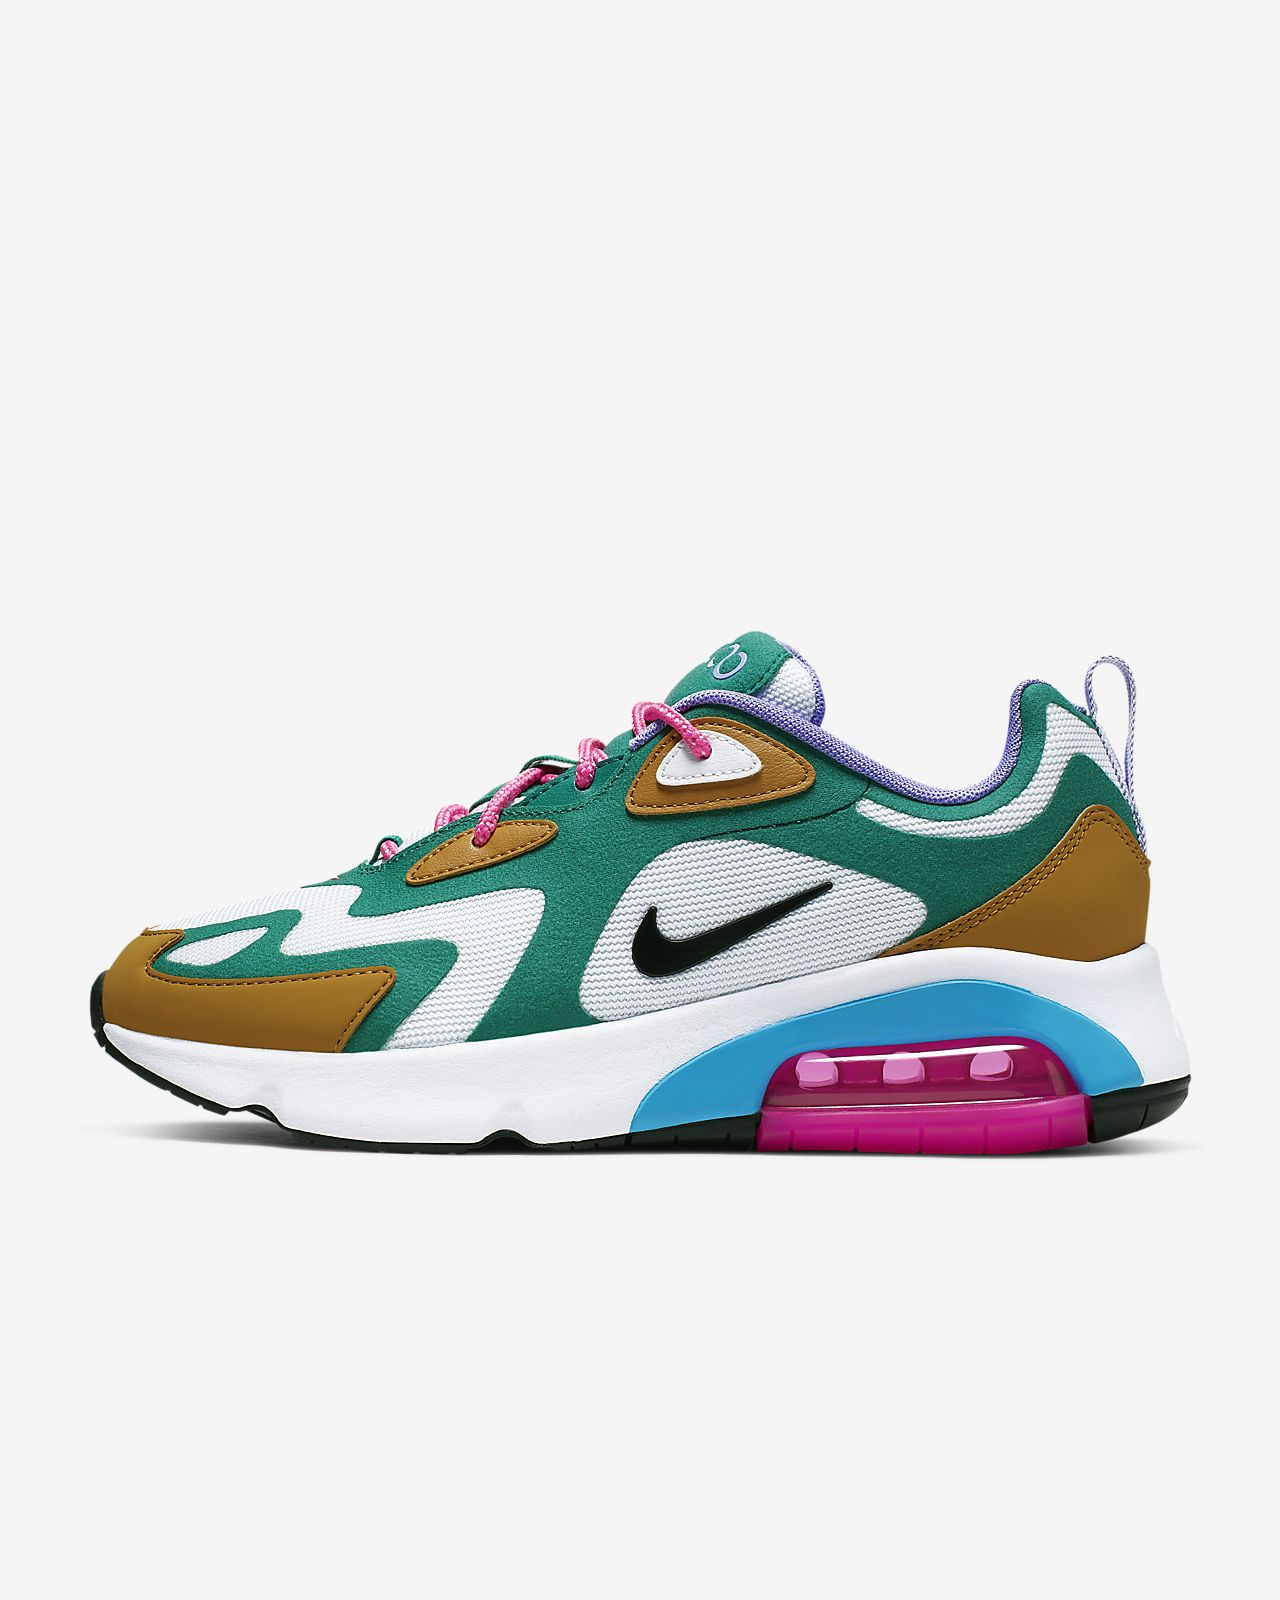 8fec534c2f Nike Air Max 200 Women's Shoe